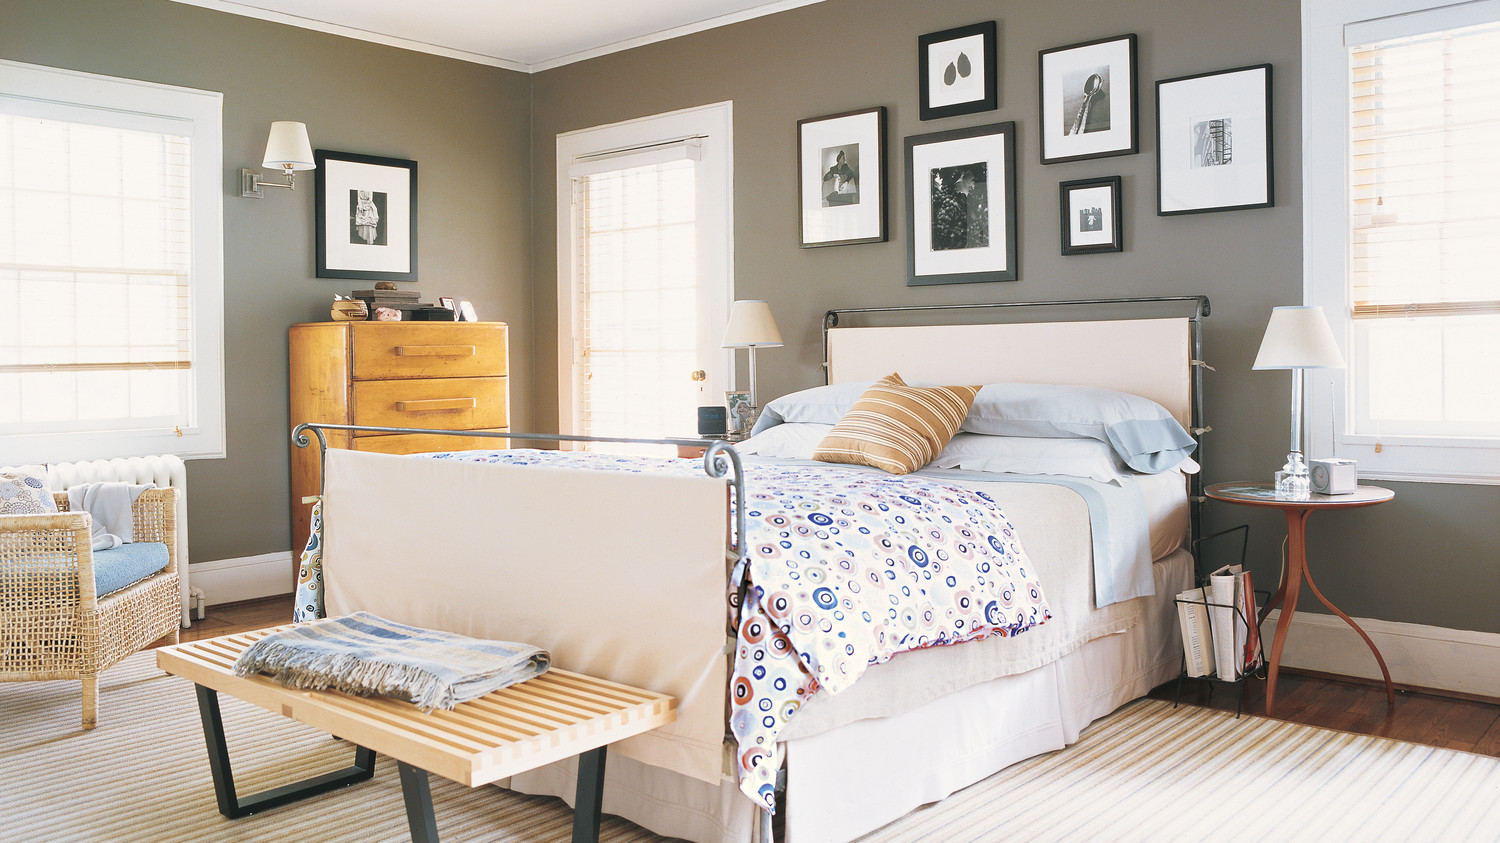 Bright Ideas for a Budget-Friendly Master Bedroom Makeover ...